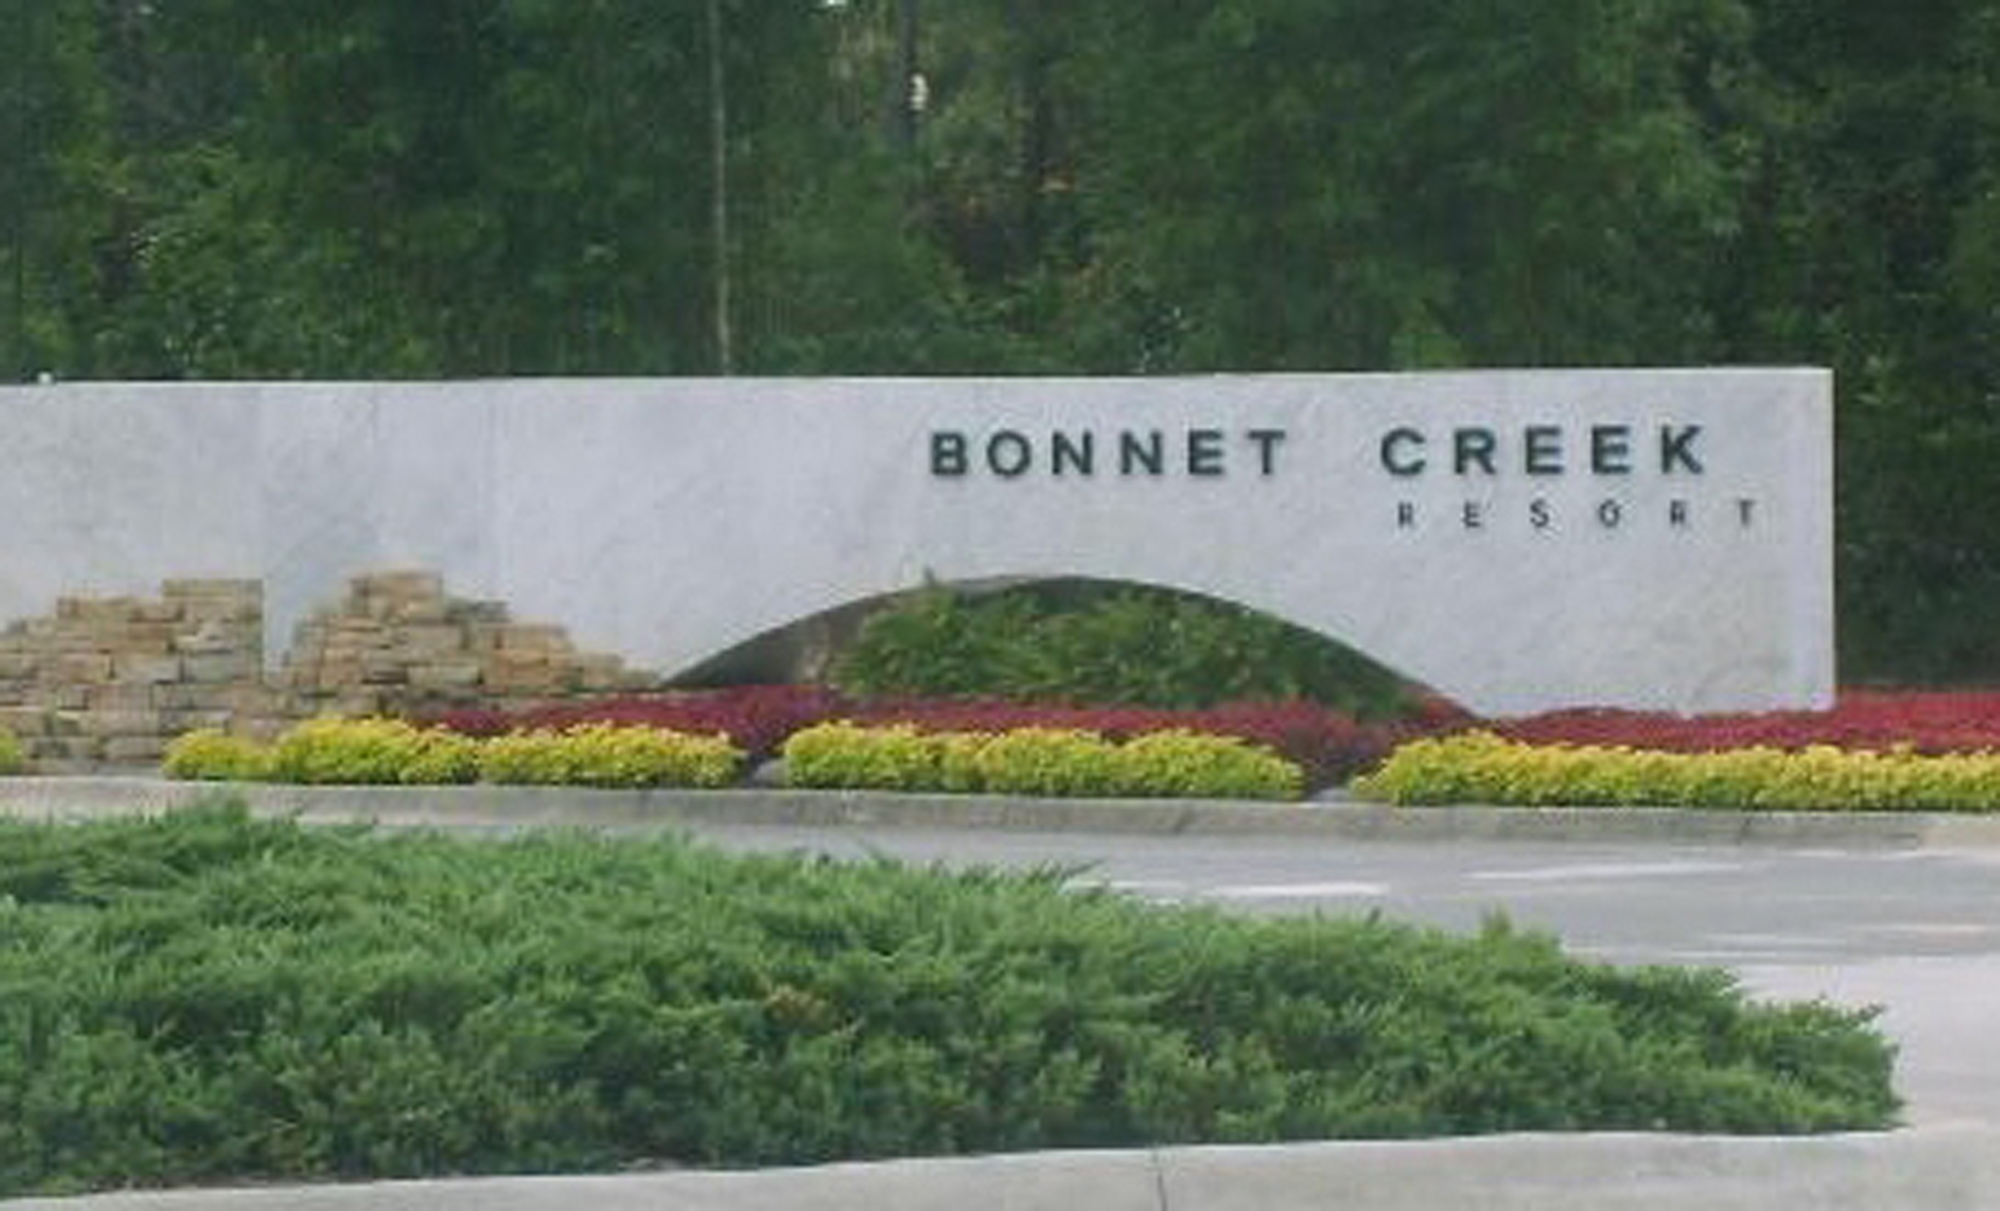 Bonnet Creek photo